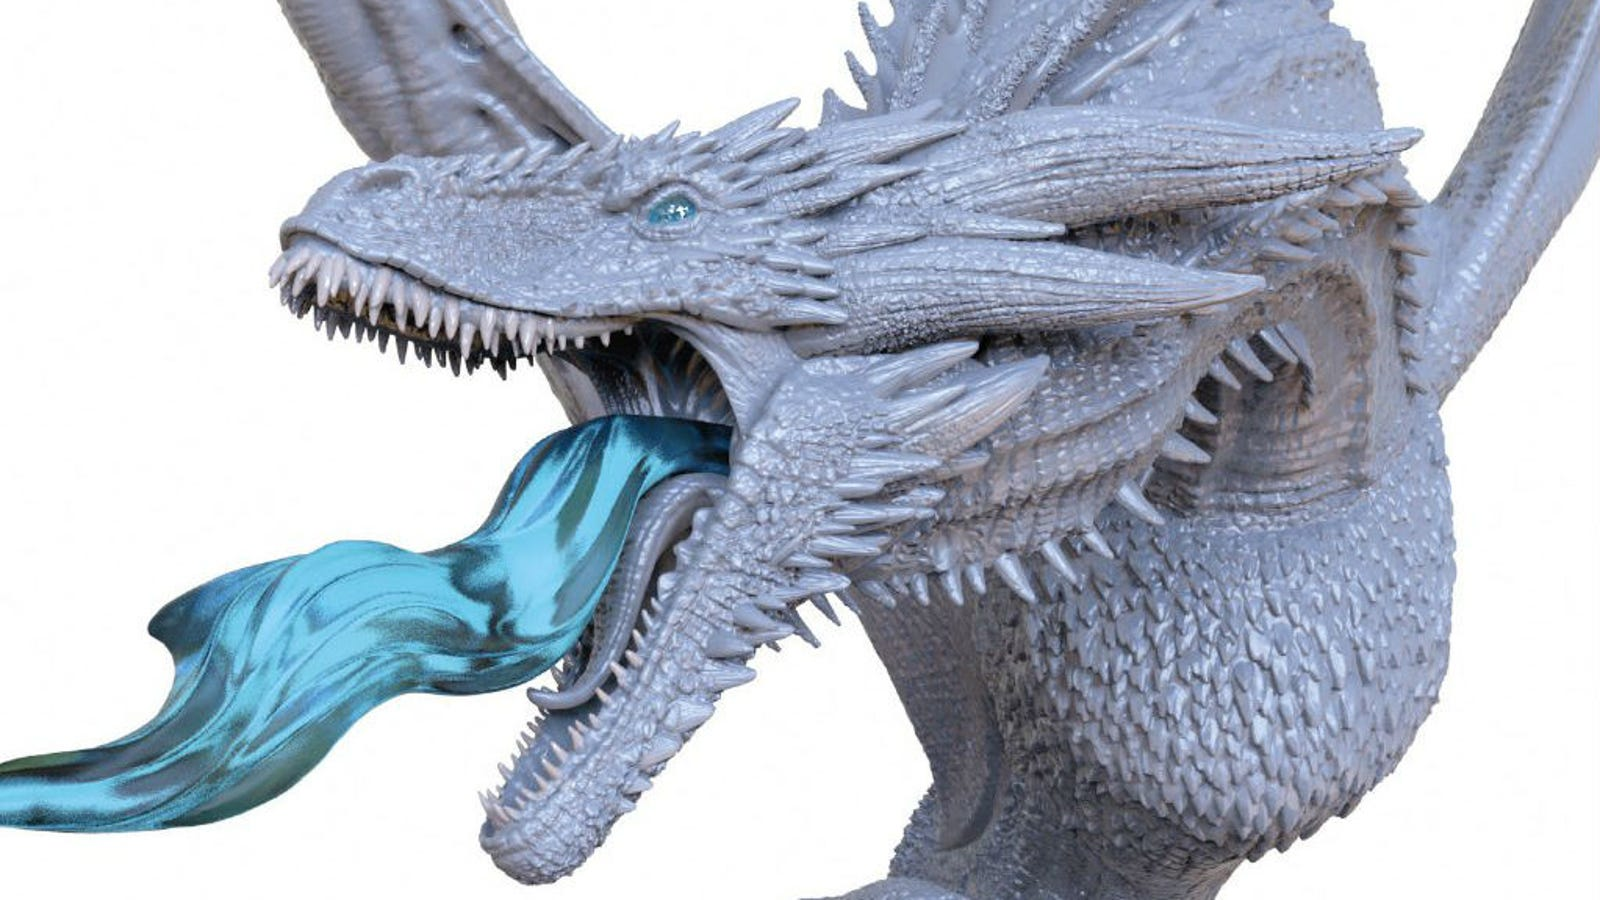 This Game Of Thrones Ice Dragon Collectible Is Incredible